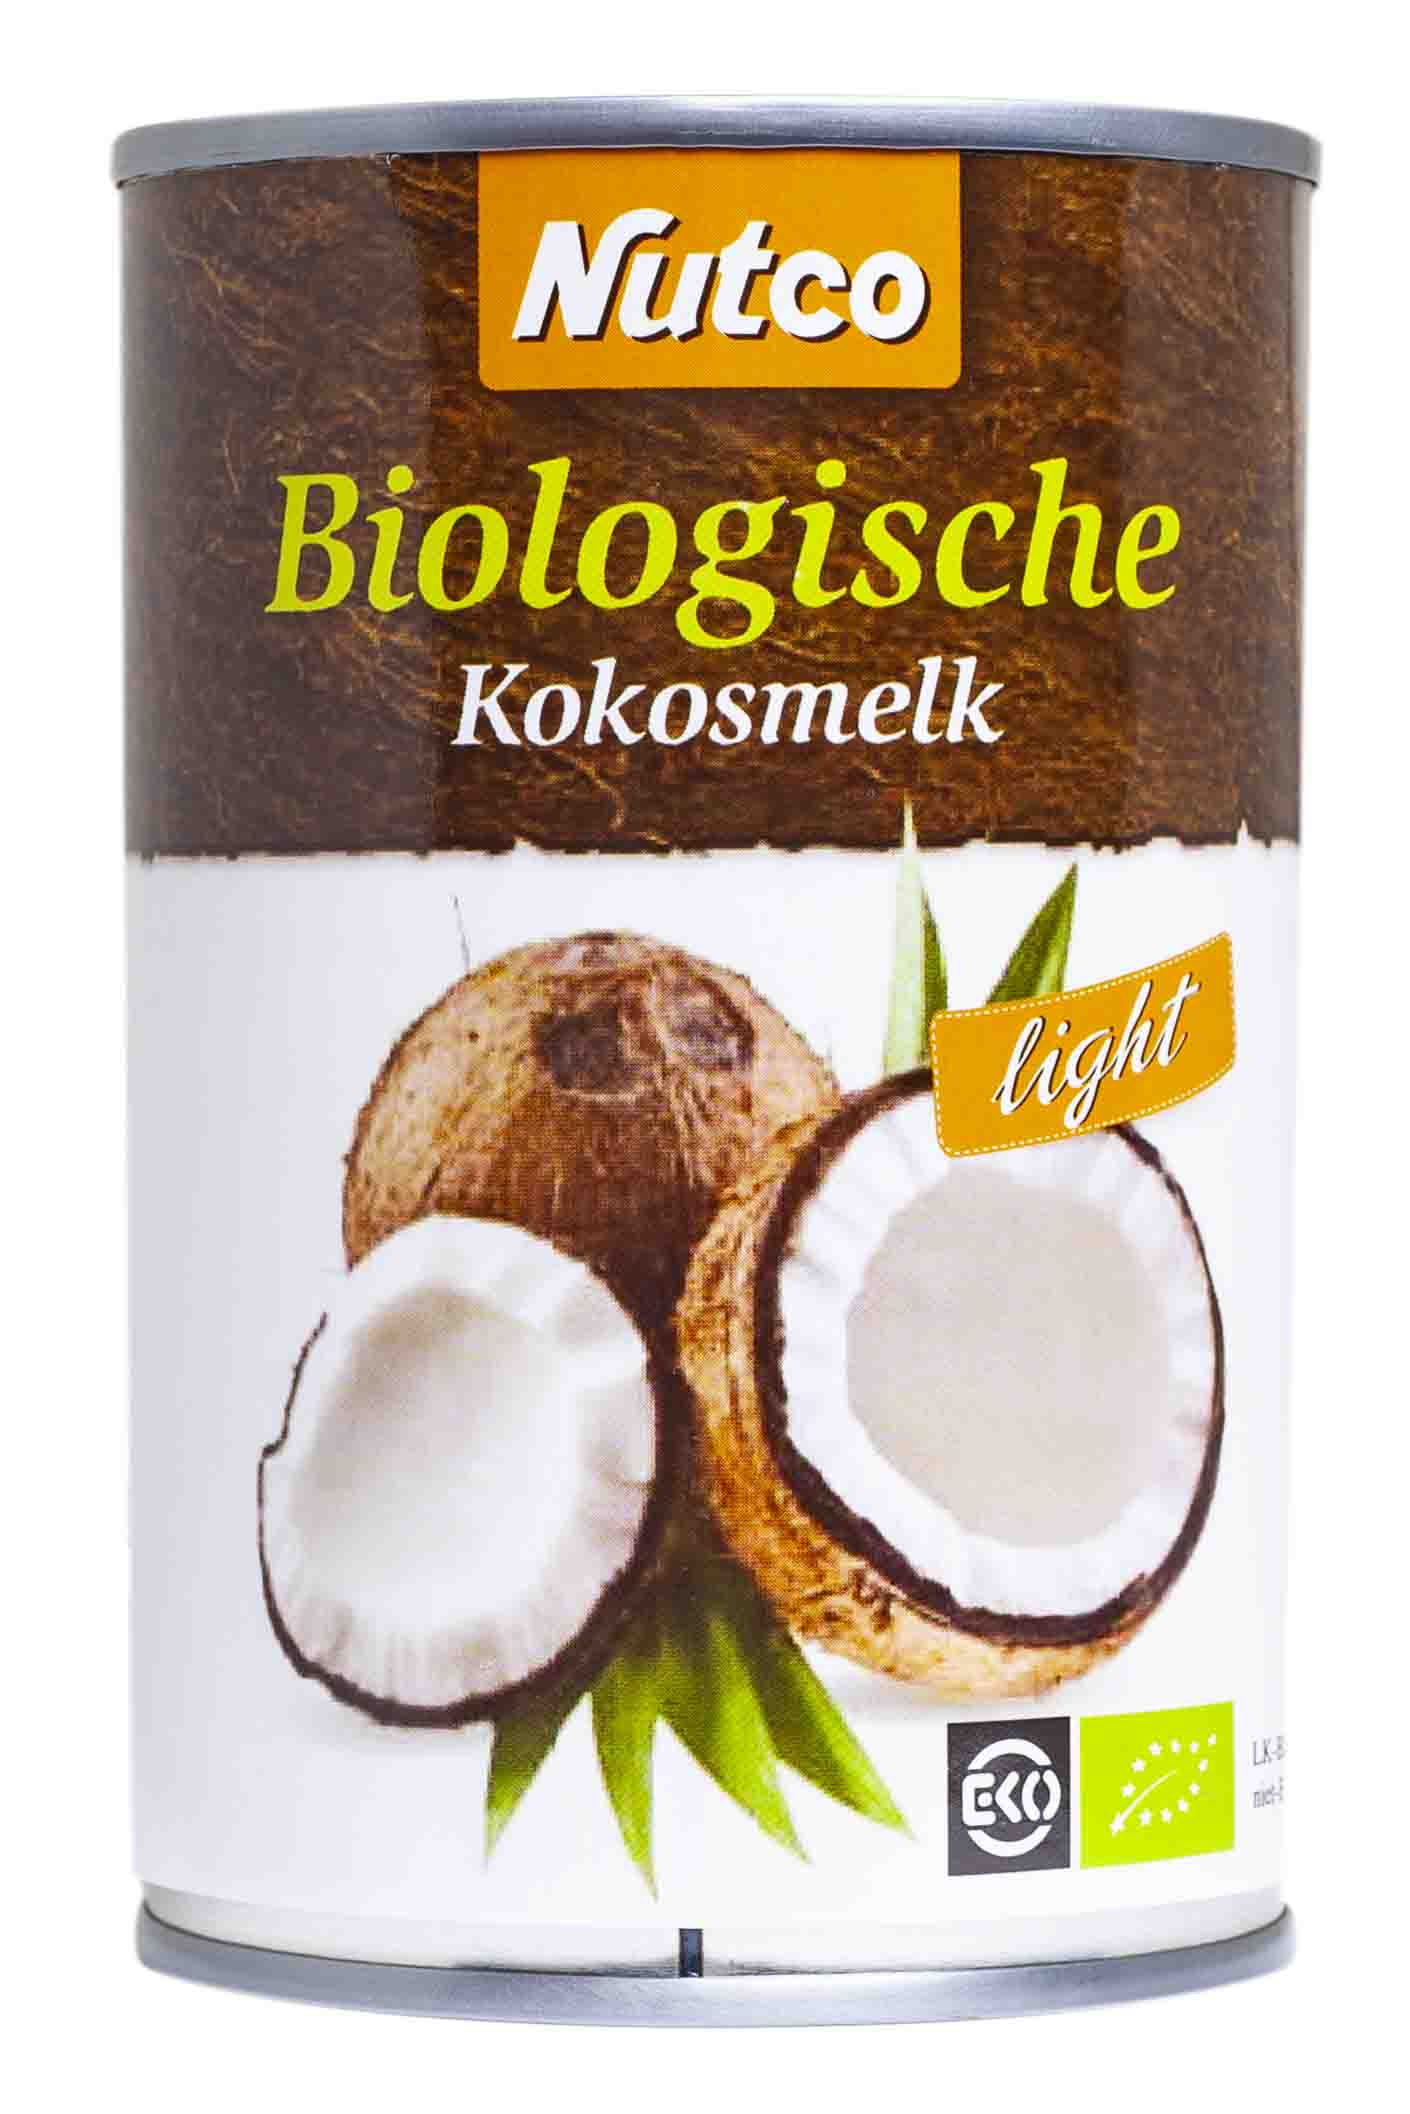 Nutco bio cocosmelk 400ml